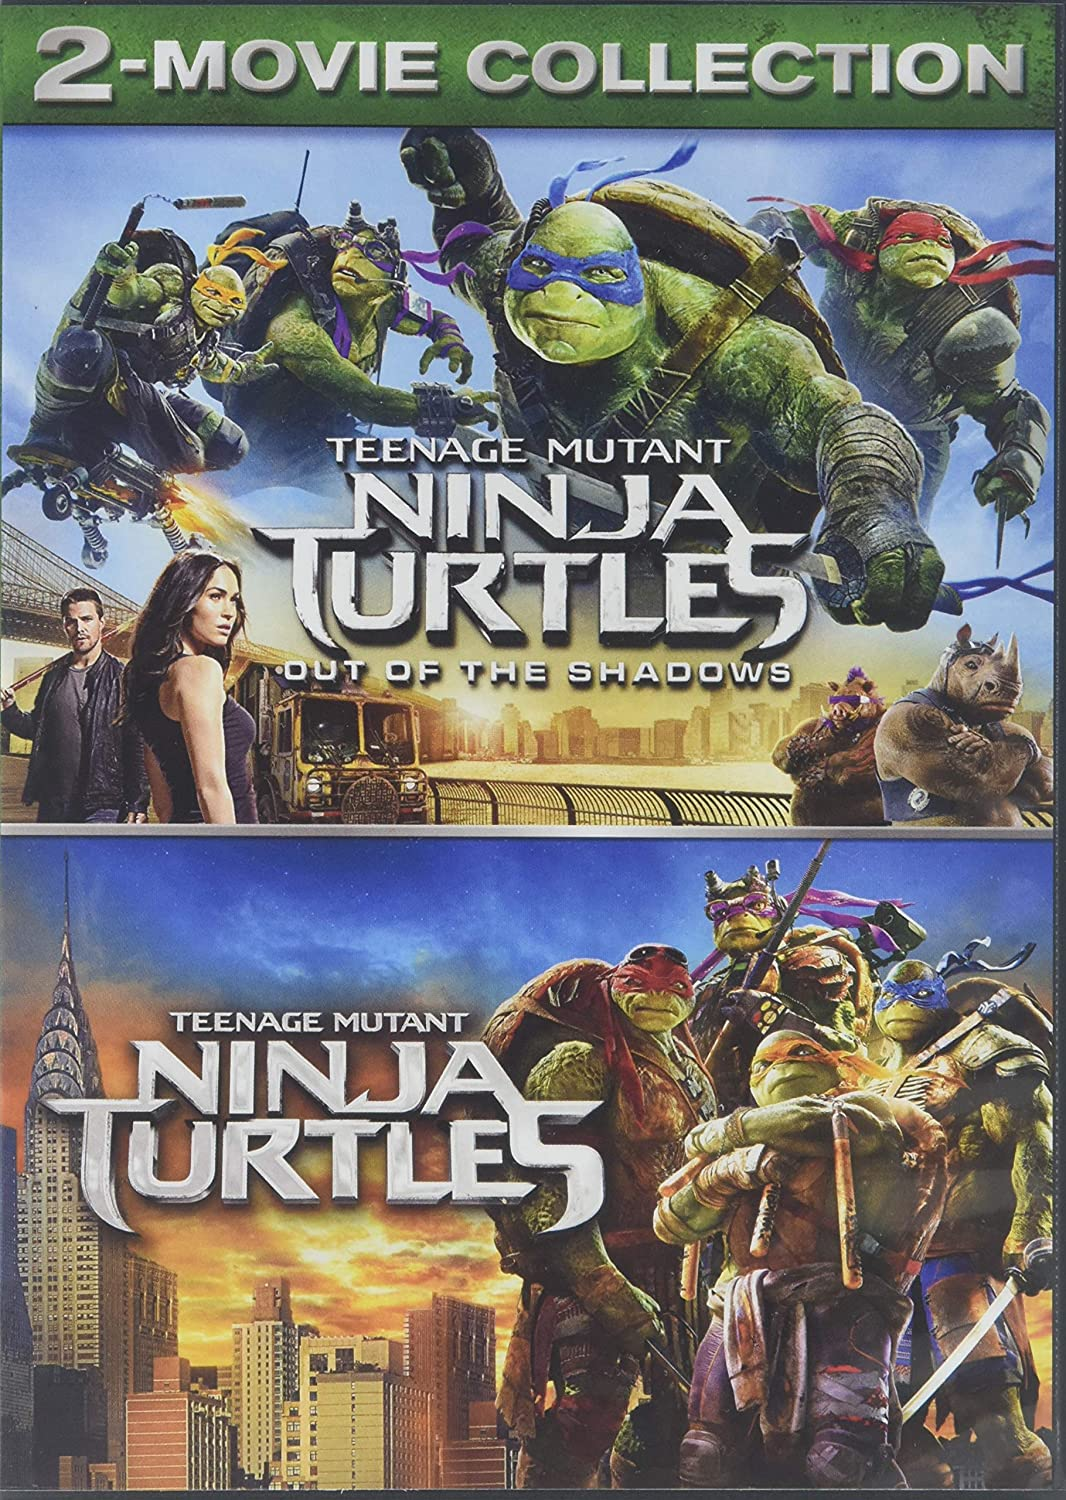 Amazon Com Teenage Mutant Ninja Turtles 2 Movie Collection Movies Tv